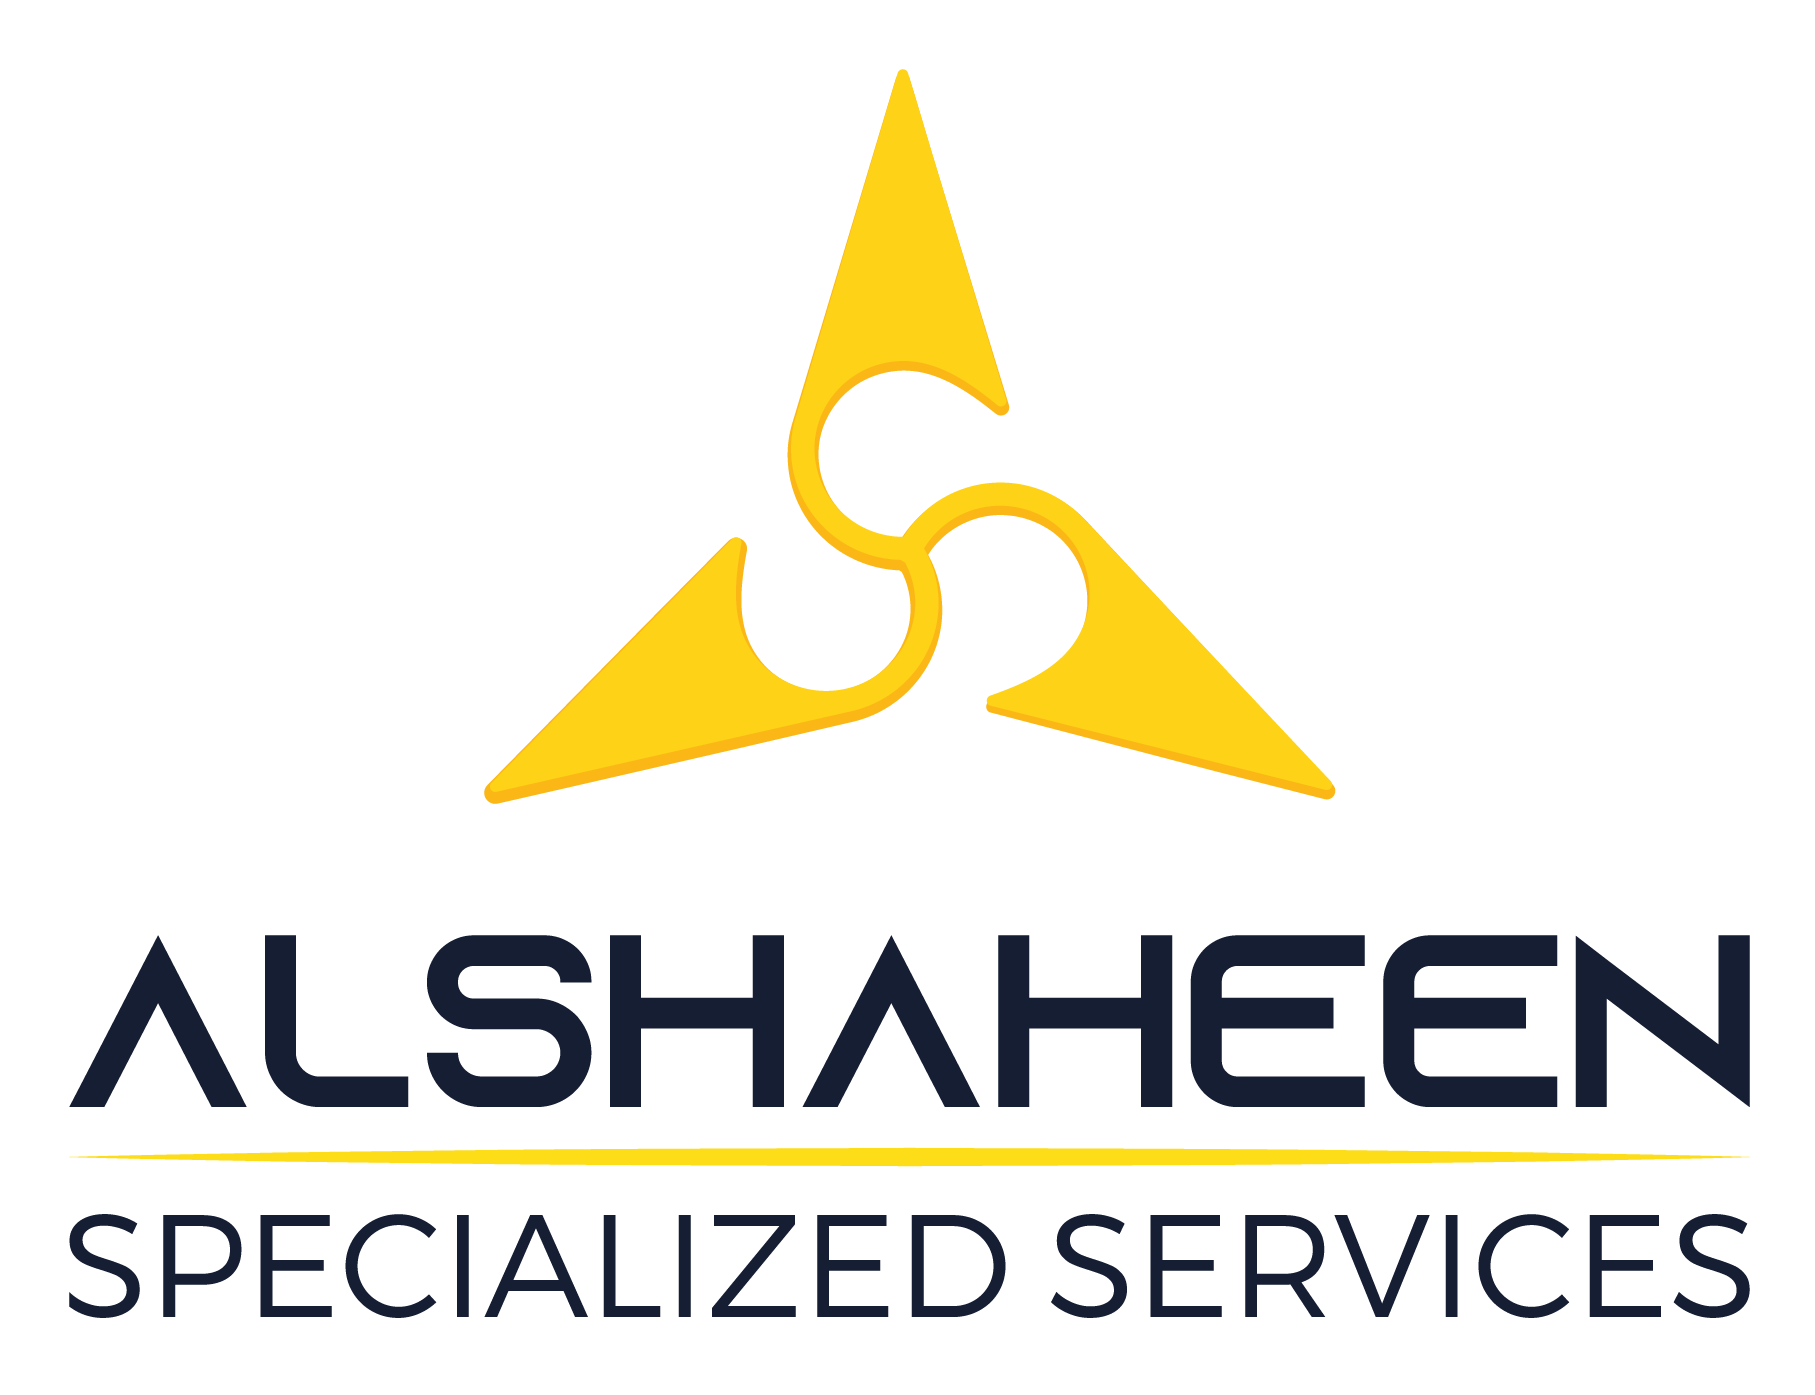 AlShaheen Specialized Maintenance and Cleaning Services